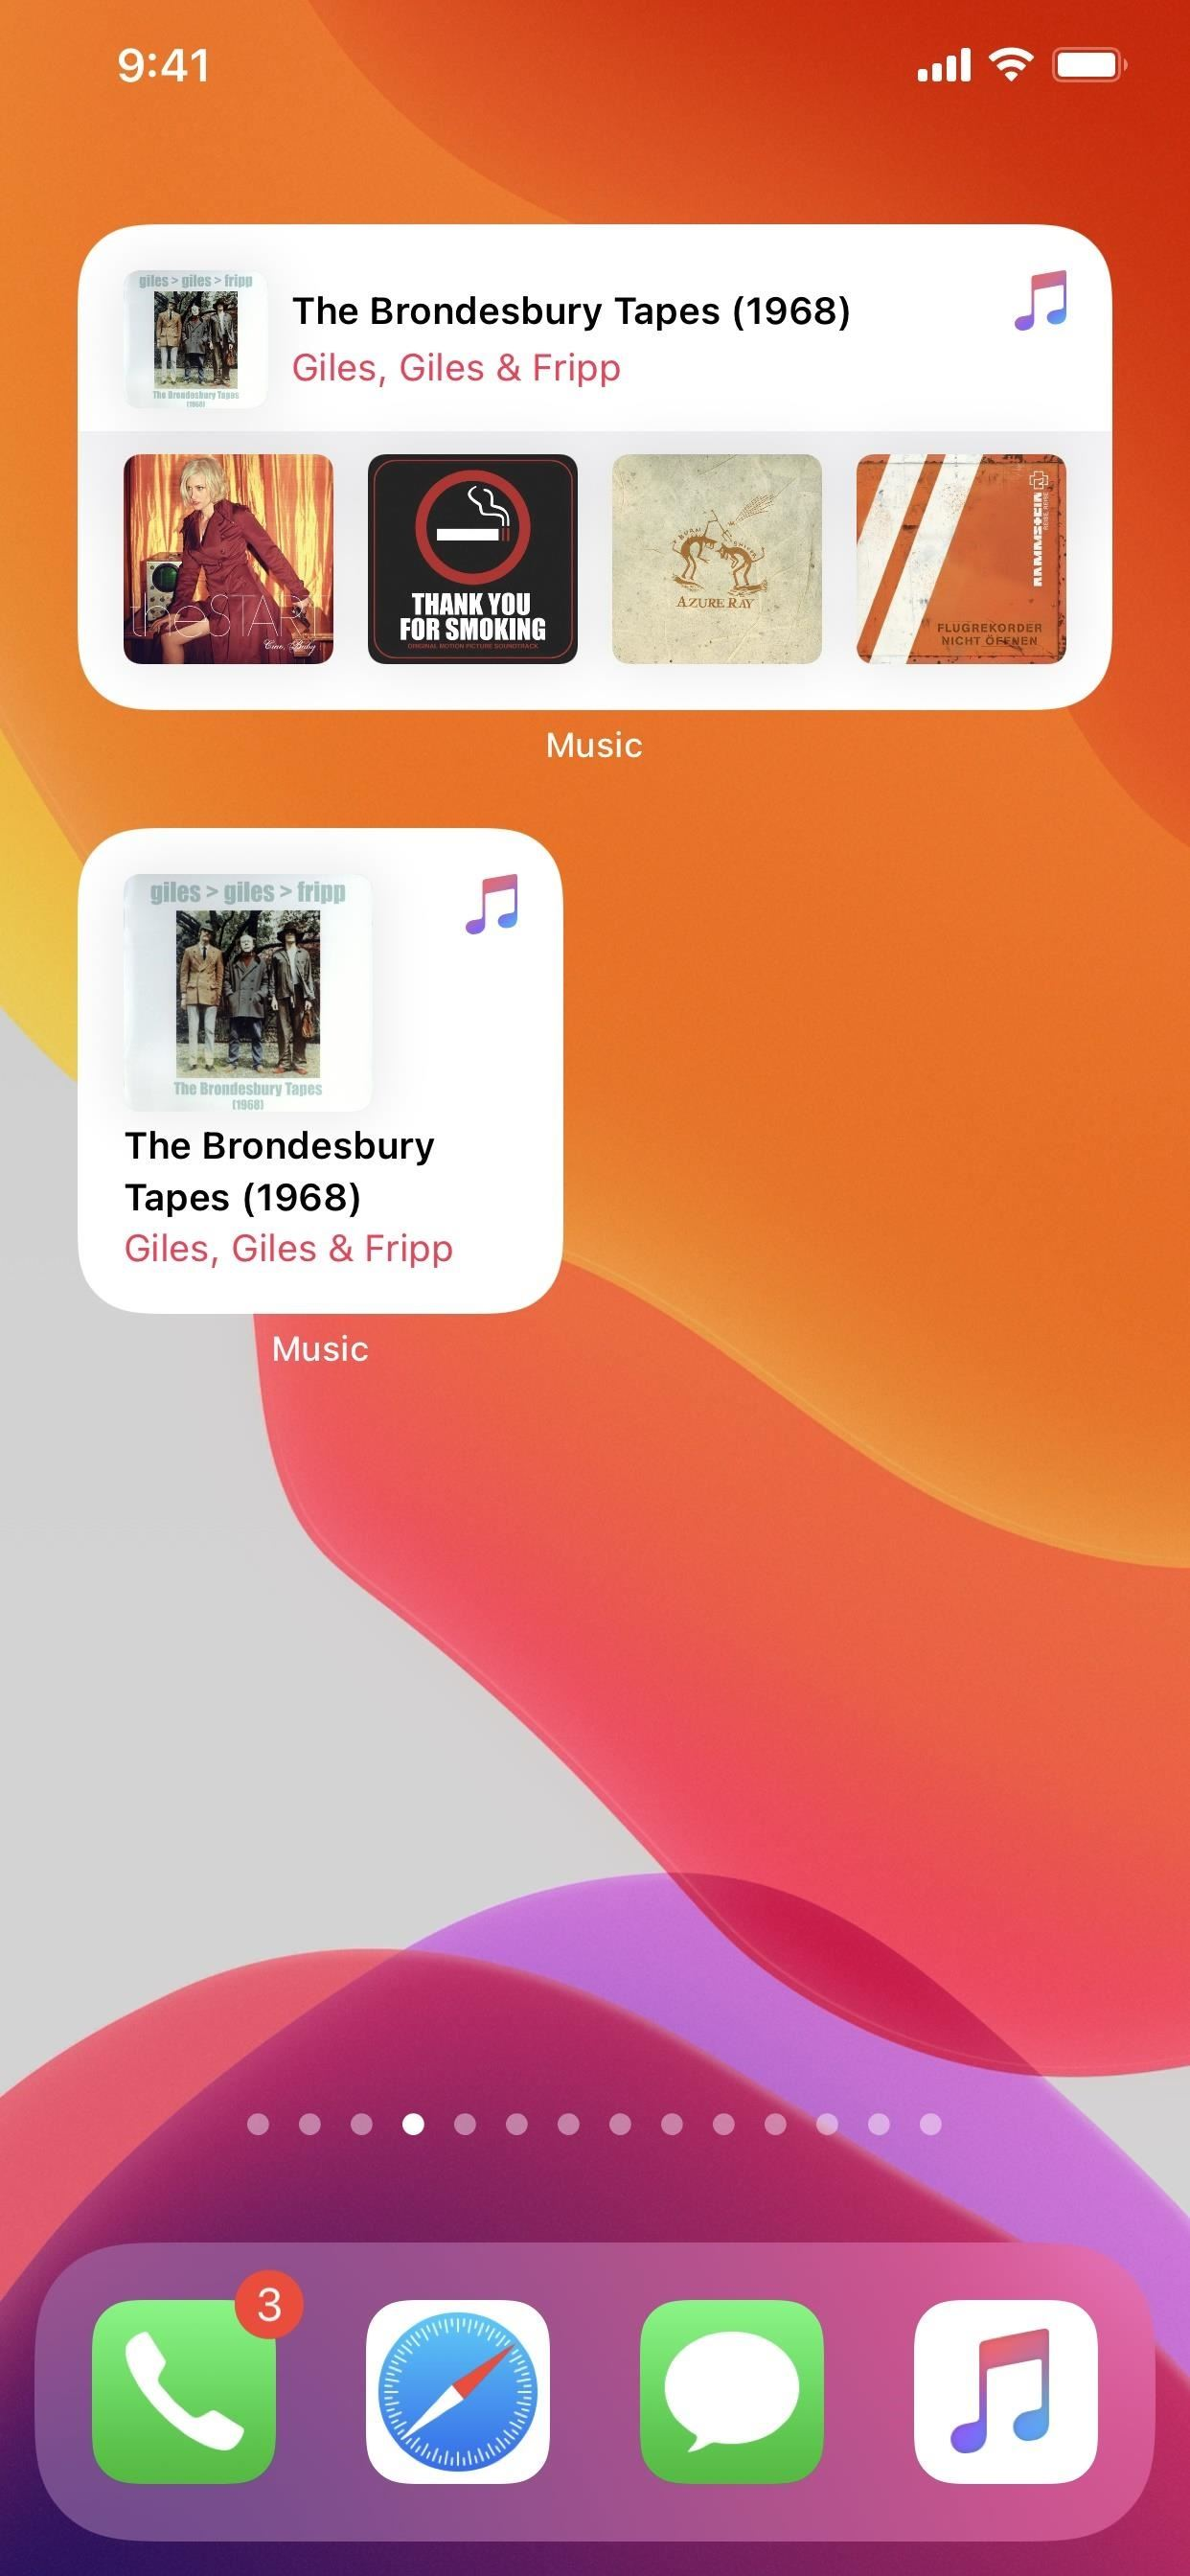 13 Ways iOS 14 Makes Listening to Music Even Better on Your iPhone